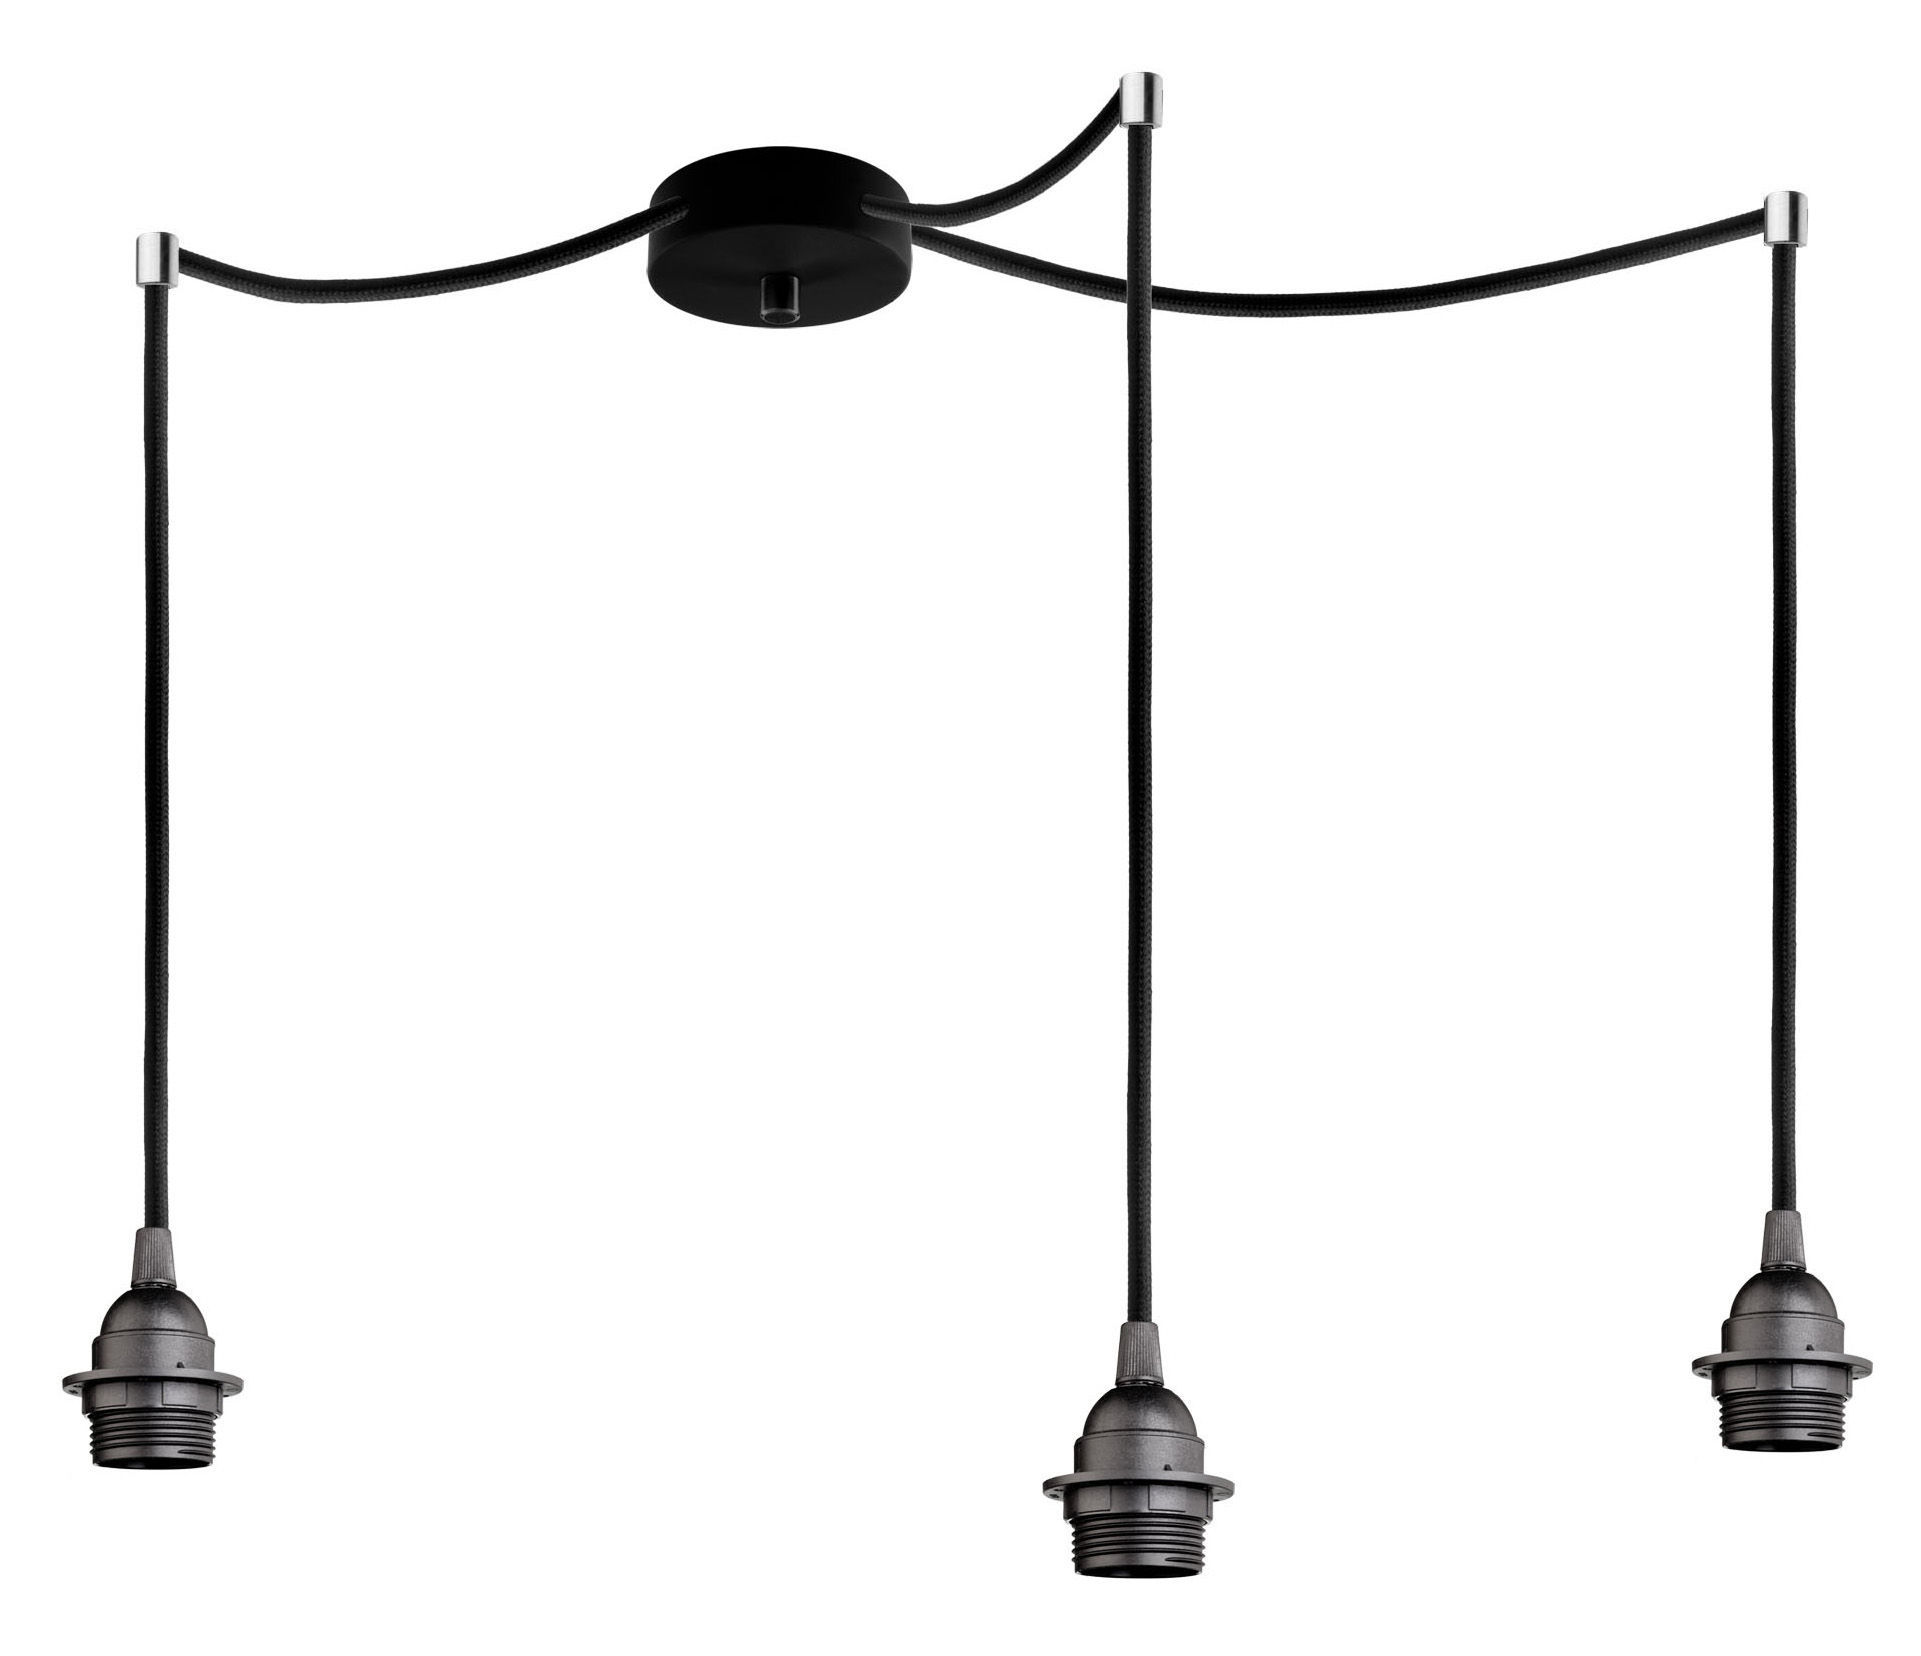 bi kage triple pendant triple with lampholder lampholder black cable black canopy black. Black Bedroom Furniture Sets. Home Design Ideas